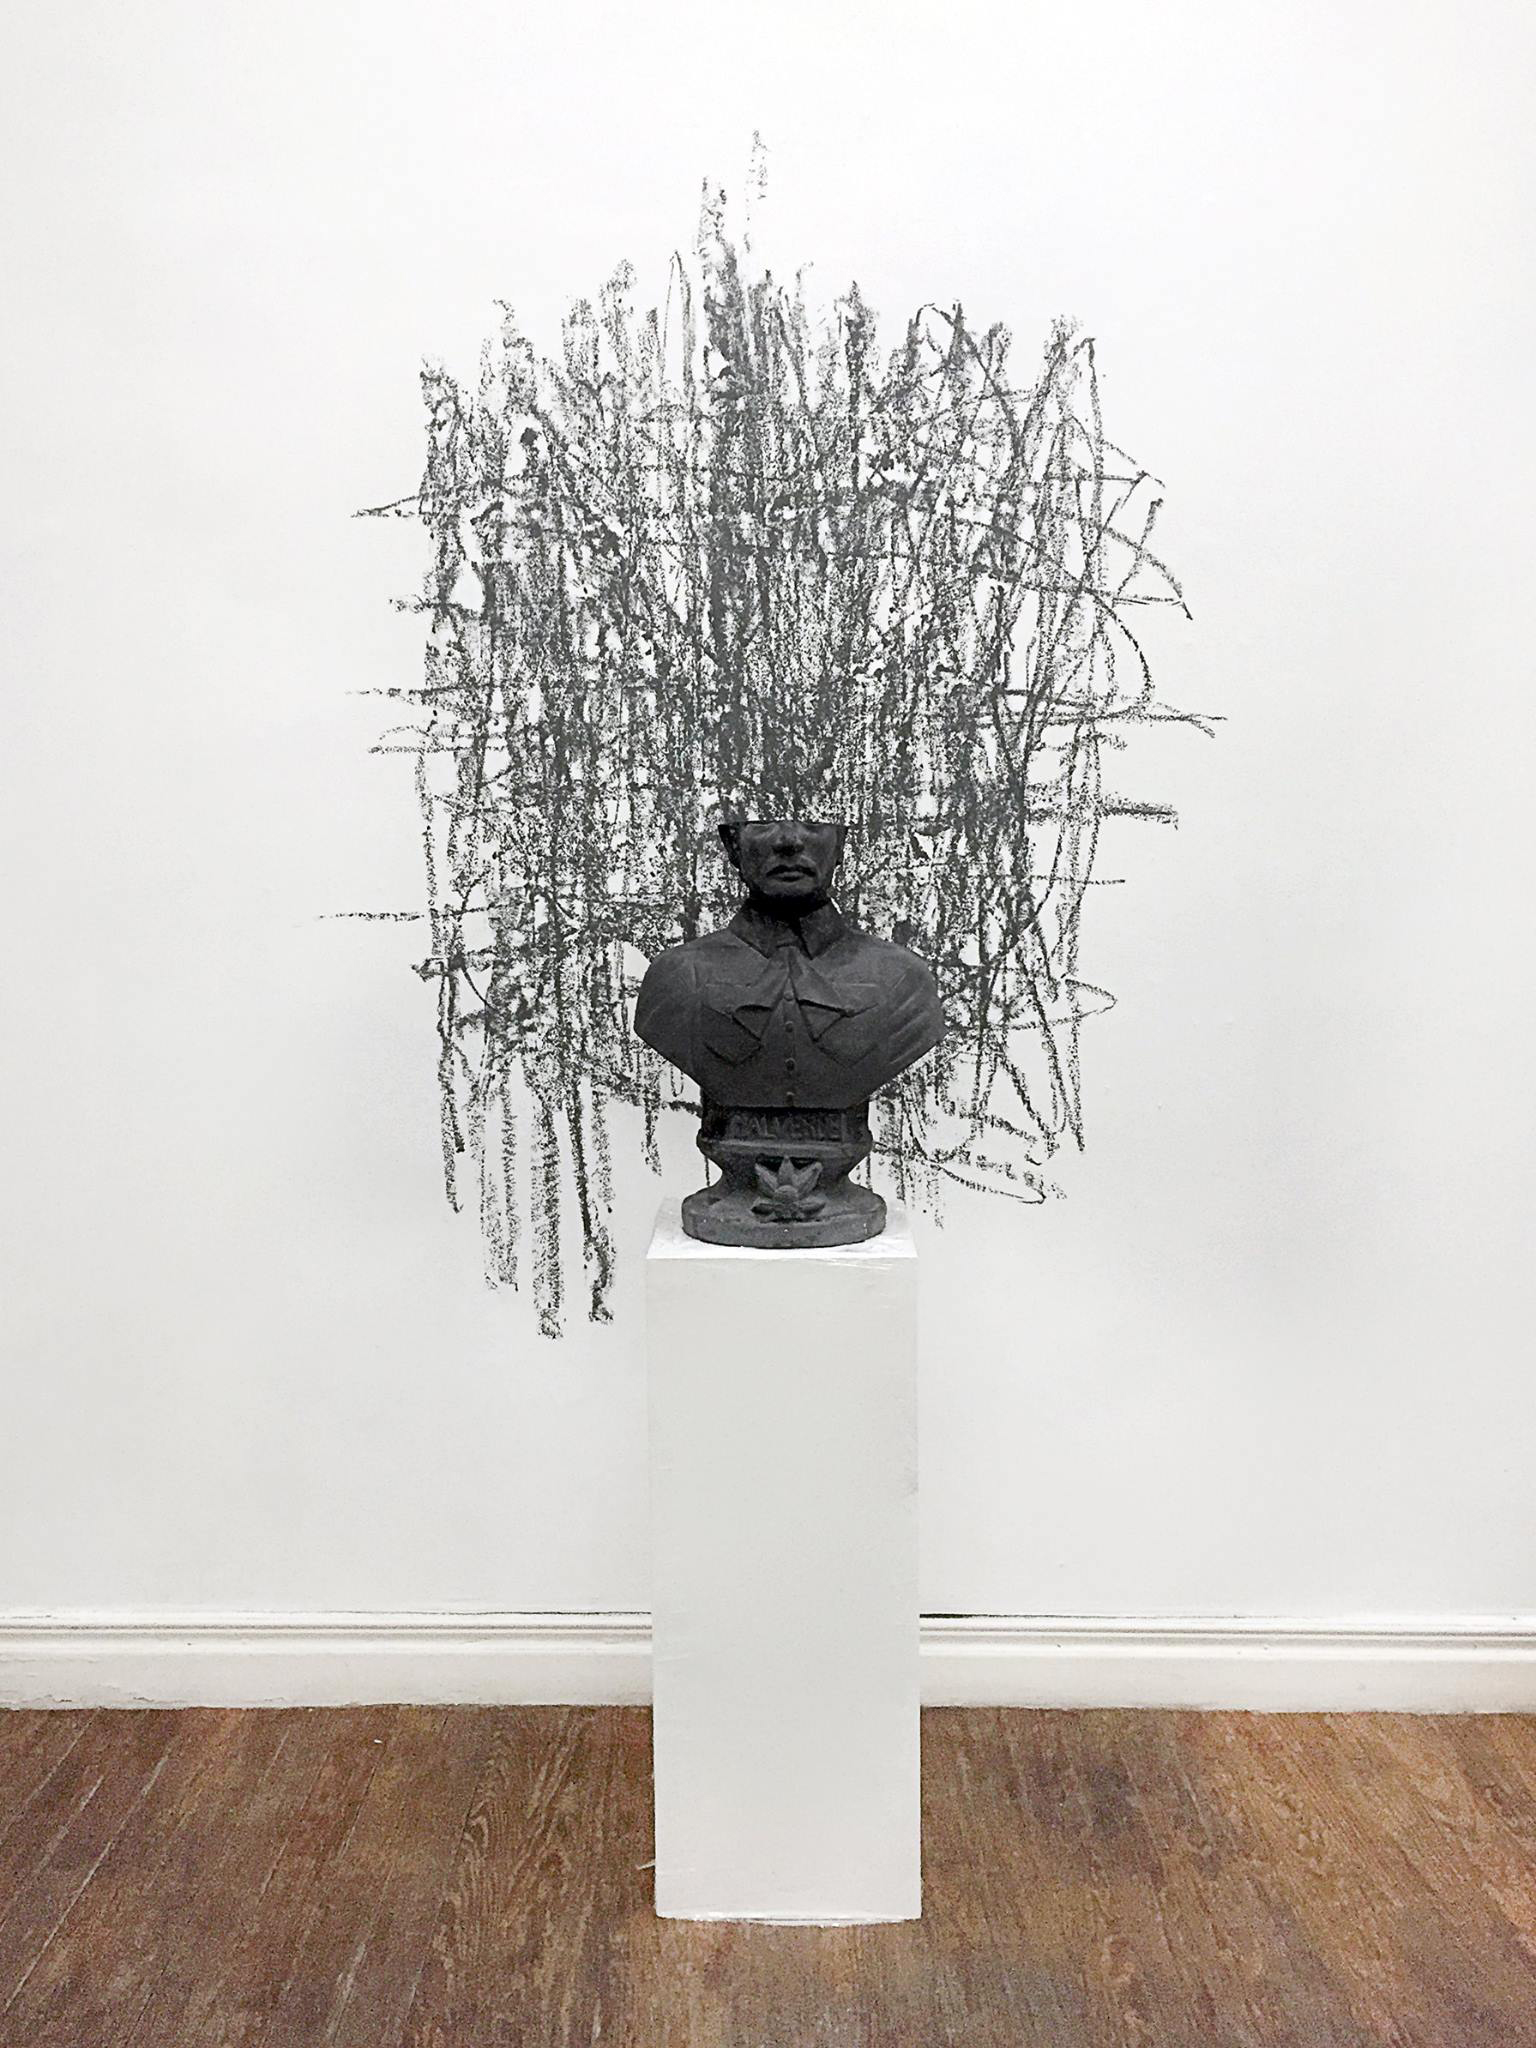 <p><em>Statues Also Die (Mauricio)</em><span class='media'>Plaster and graphite</span>15 x 24 x 8in (Dimensions Variable with Drawing)<br>Edition of Edition of 3<br>2015<br><a class='inquire' href='mailto:info@gildargallery.com?subject=Artwork Inquiry DOBE0019&body=I am interested in finding out more about Statues Also Die (Mauricio) by Dmitri Obergfell'>Inquire</a></p>